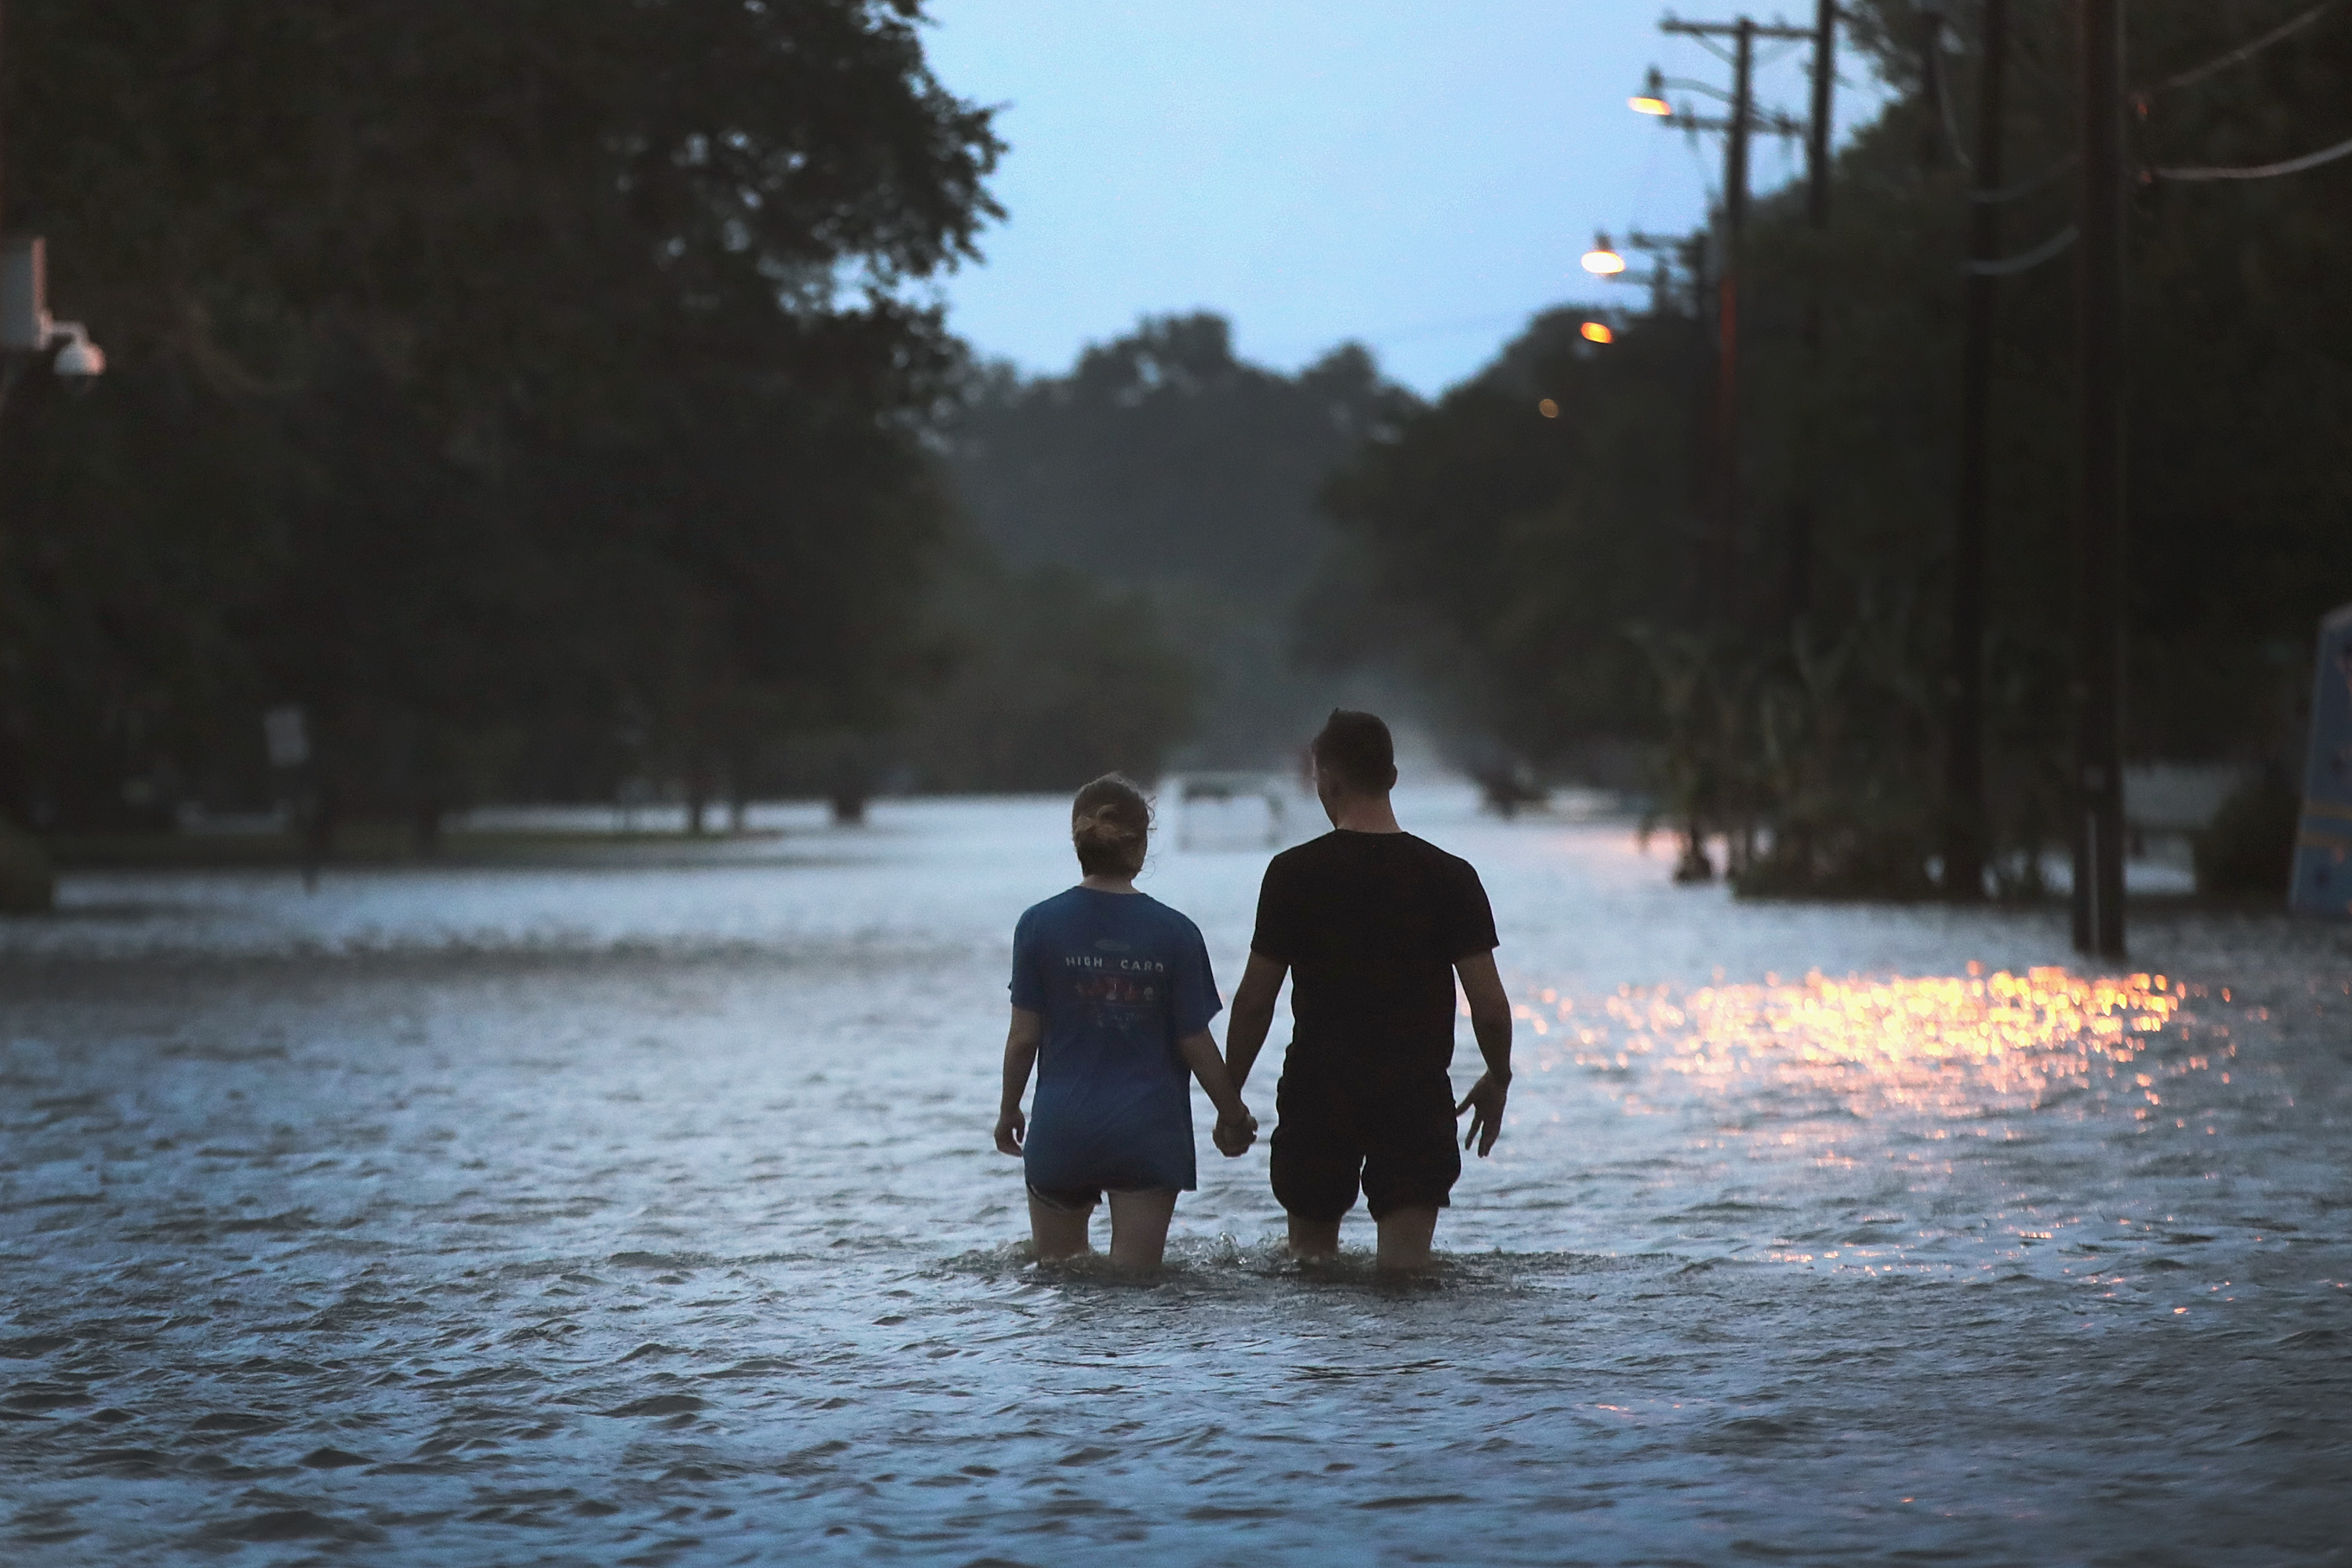 A couple walks through a flooded street in Mandeville, Louisiana.